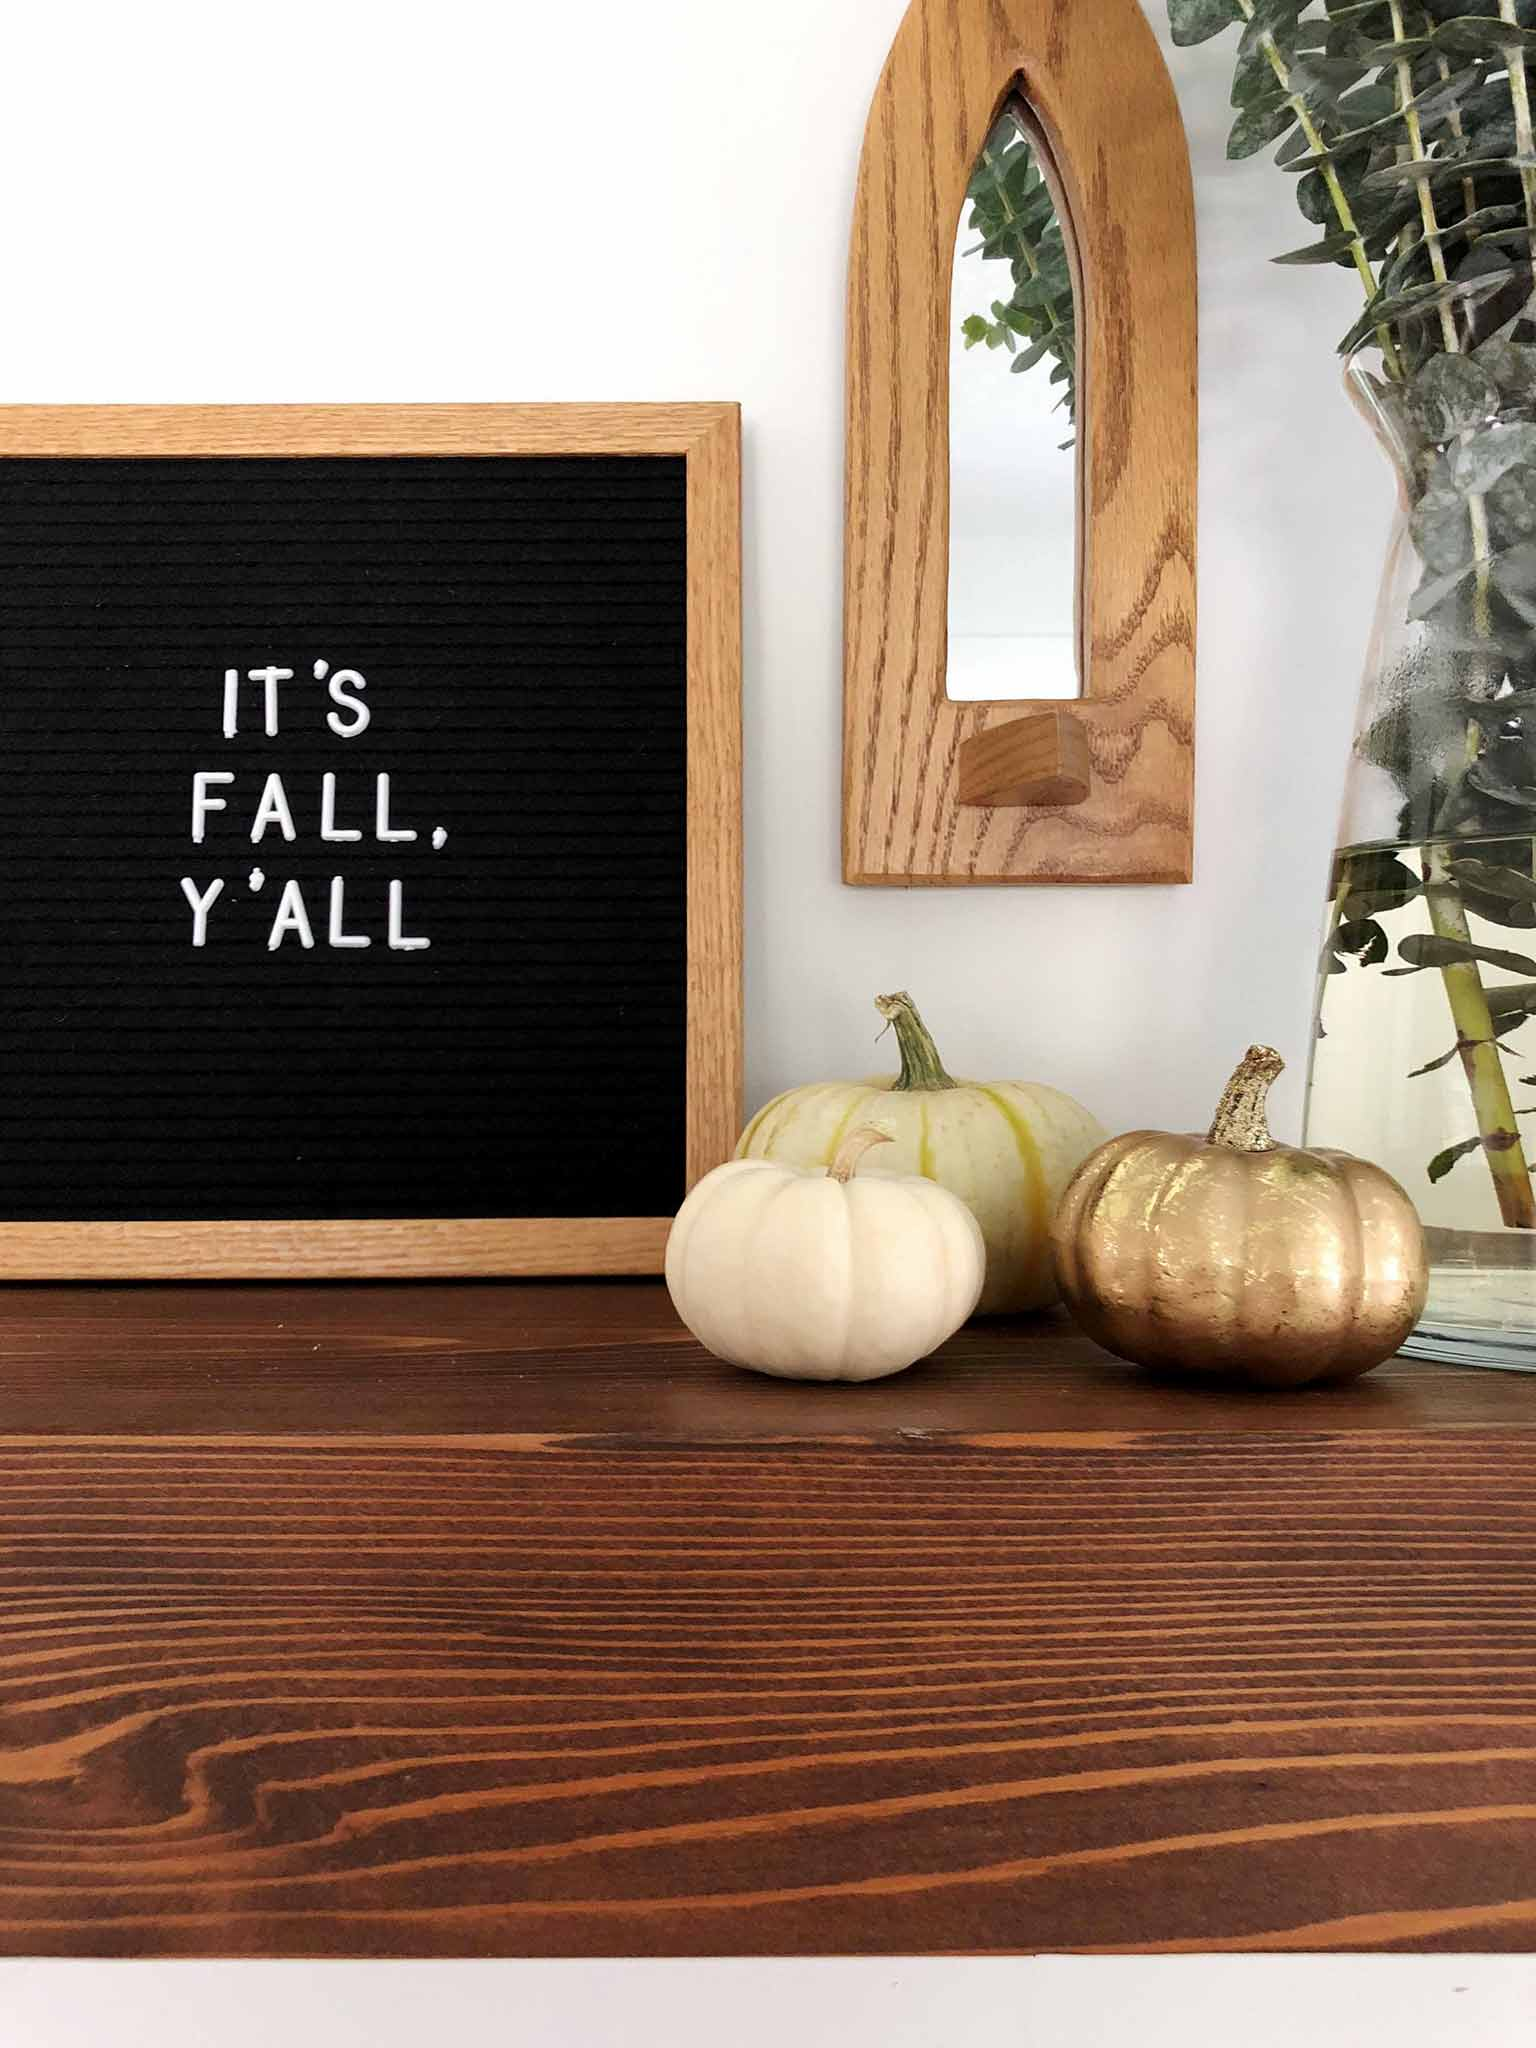 Mantel with a letterboard and pumpkins - Simple Fall Decor for the Uncluttered Home - That Homebird Life blog